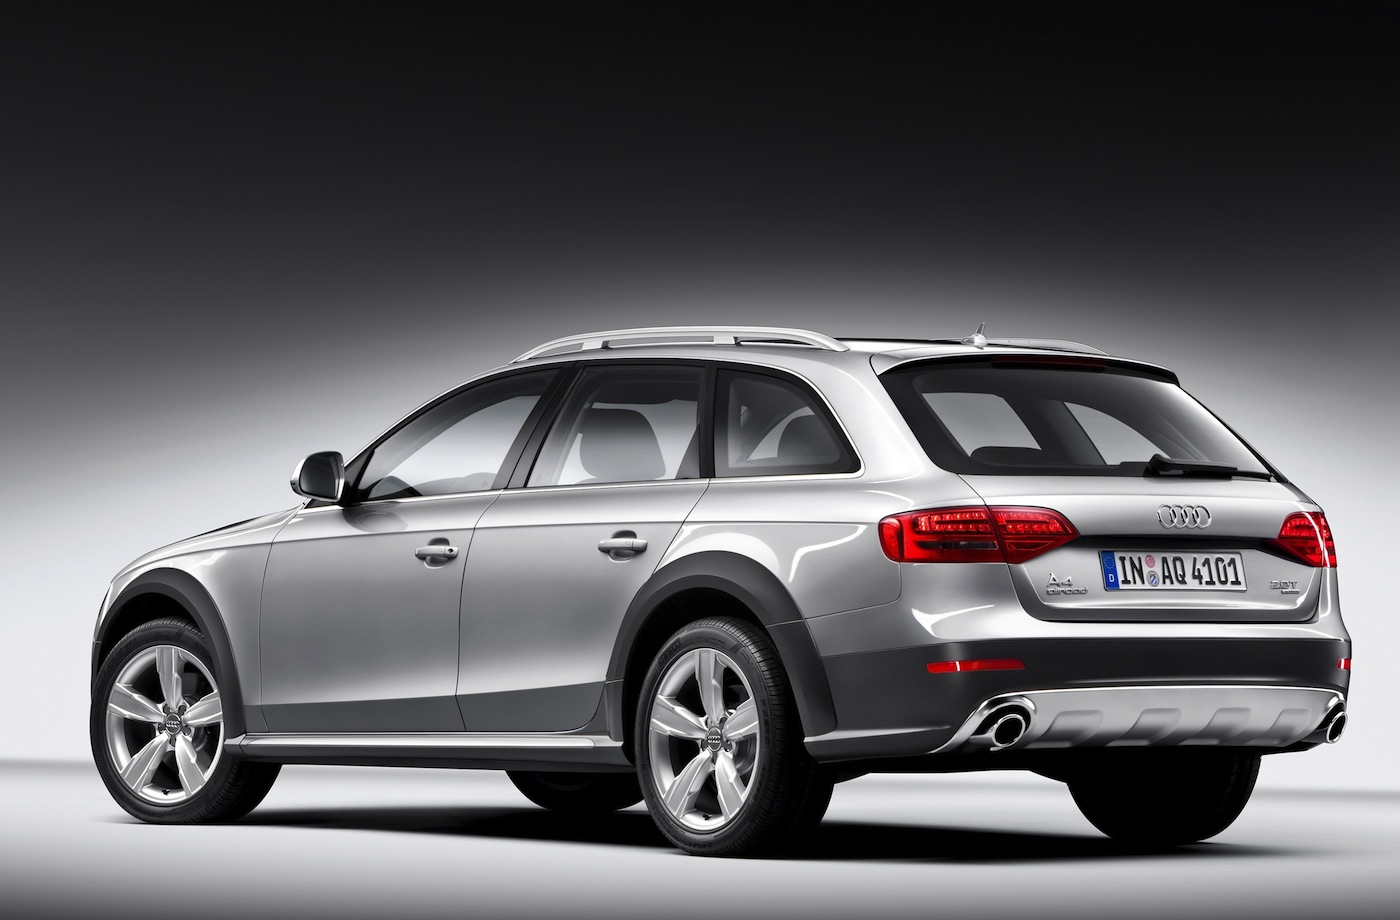 2009 Audi A4 Allroad Wagon 5-door